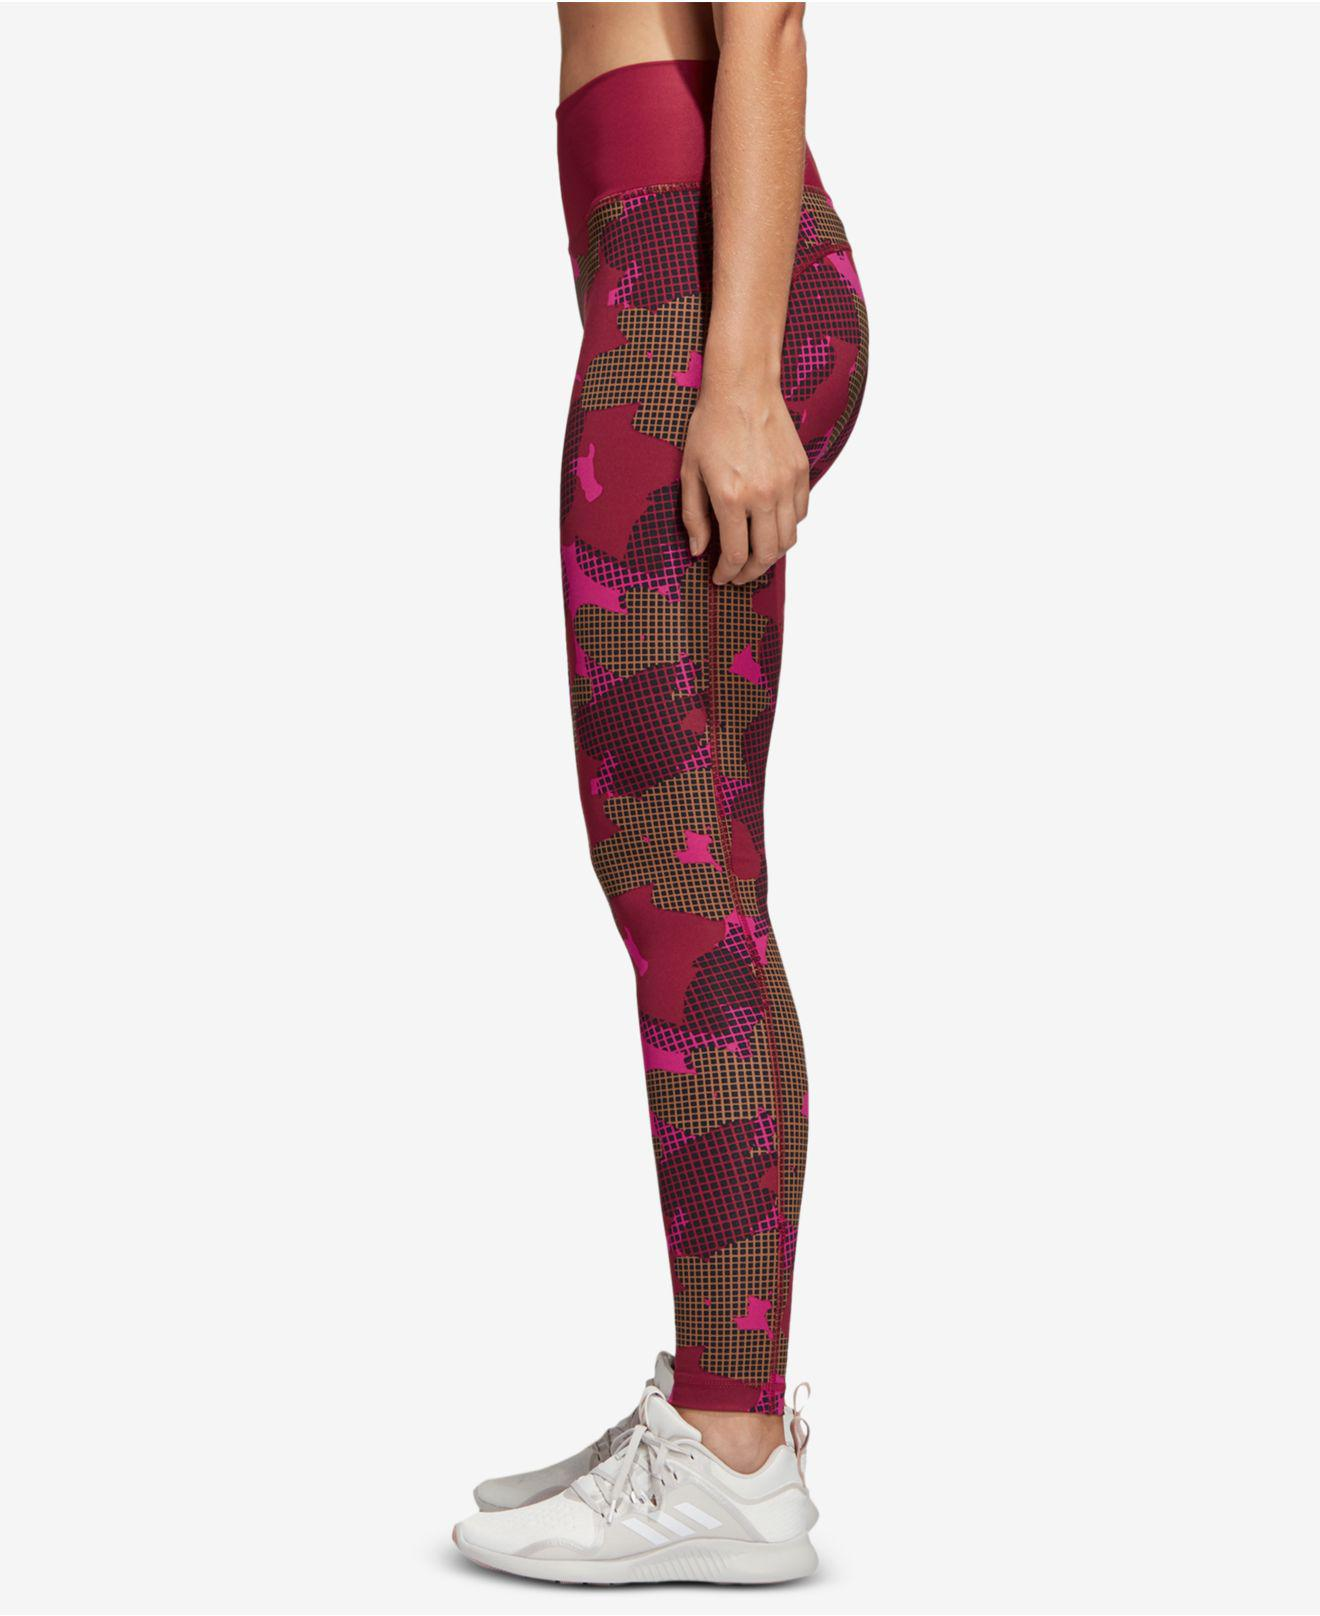 4a9c4885d3e41 Adidas - Red Believe This Printed High-rise Ankle Leggings - Lyst. View  fullscreen